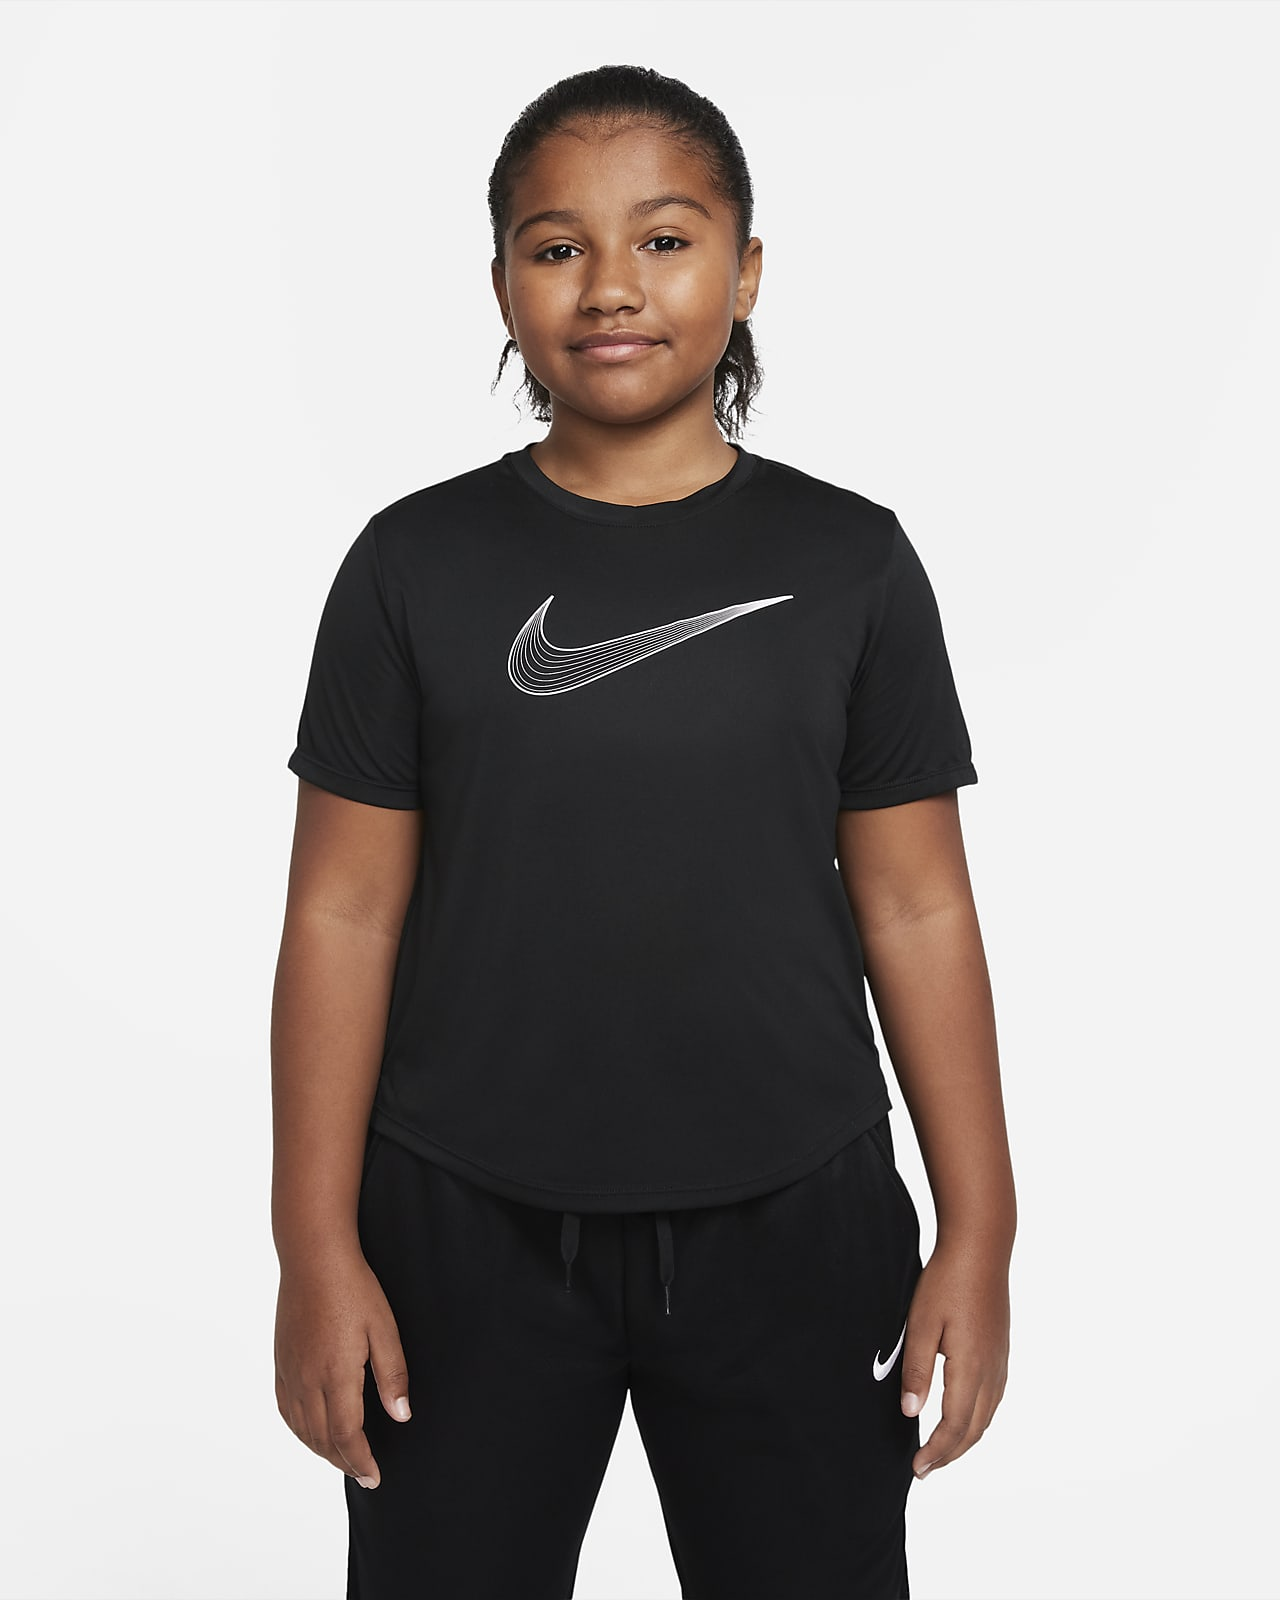 Nike Dri-FIT One Older Kids' (Girls') Short-Sleeve Training Top (Extended Size)